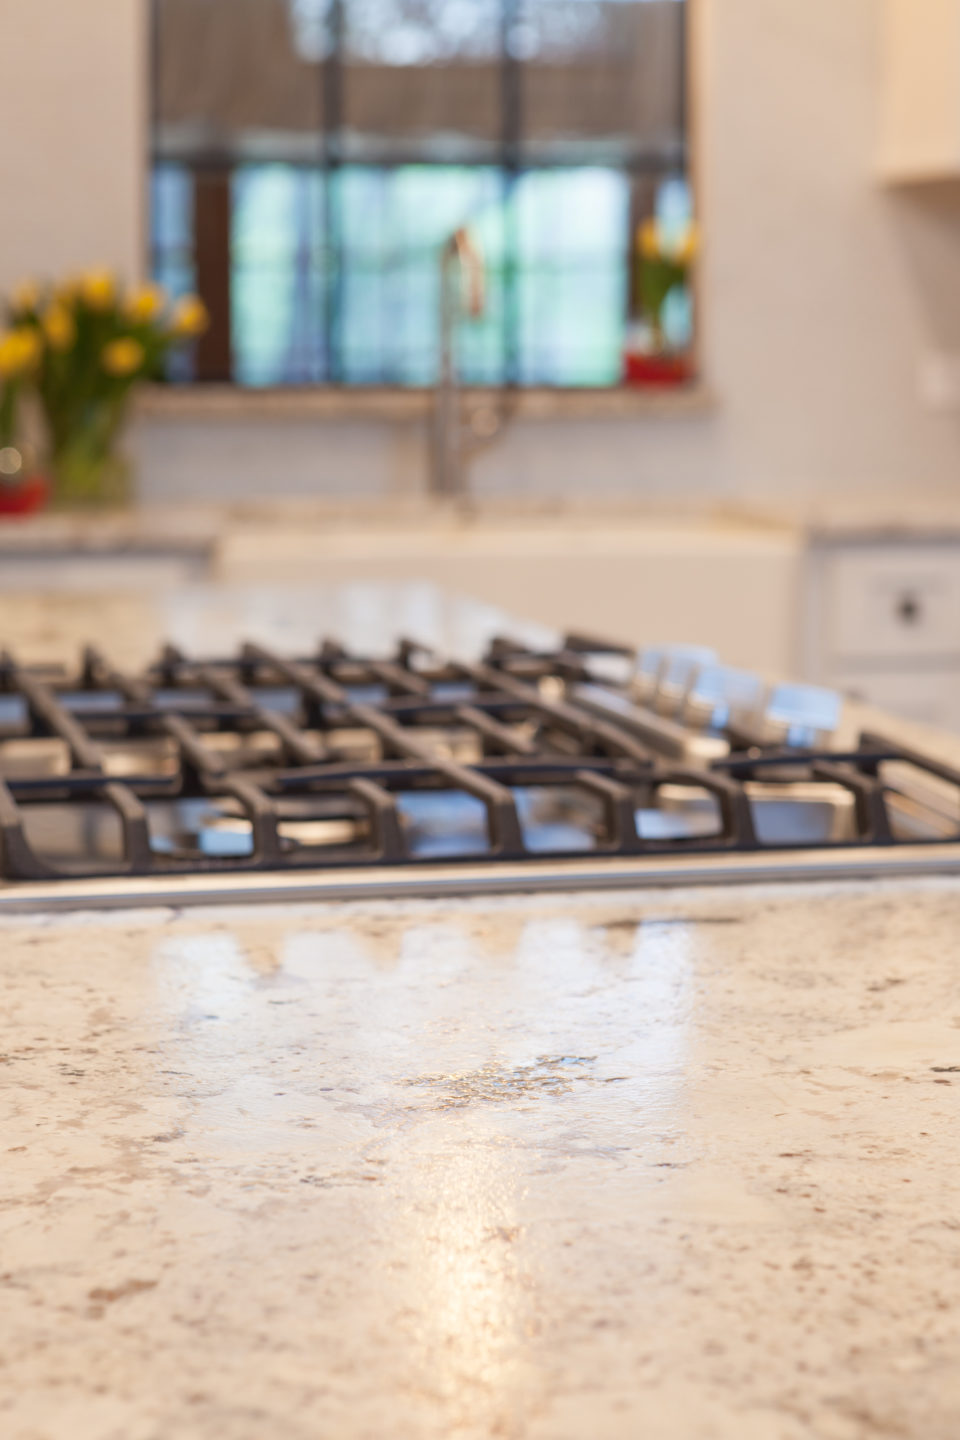 Cooktop Close to Pots and Pans